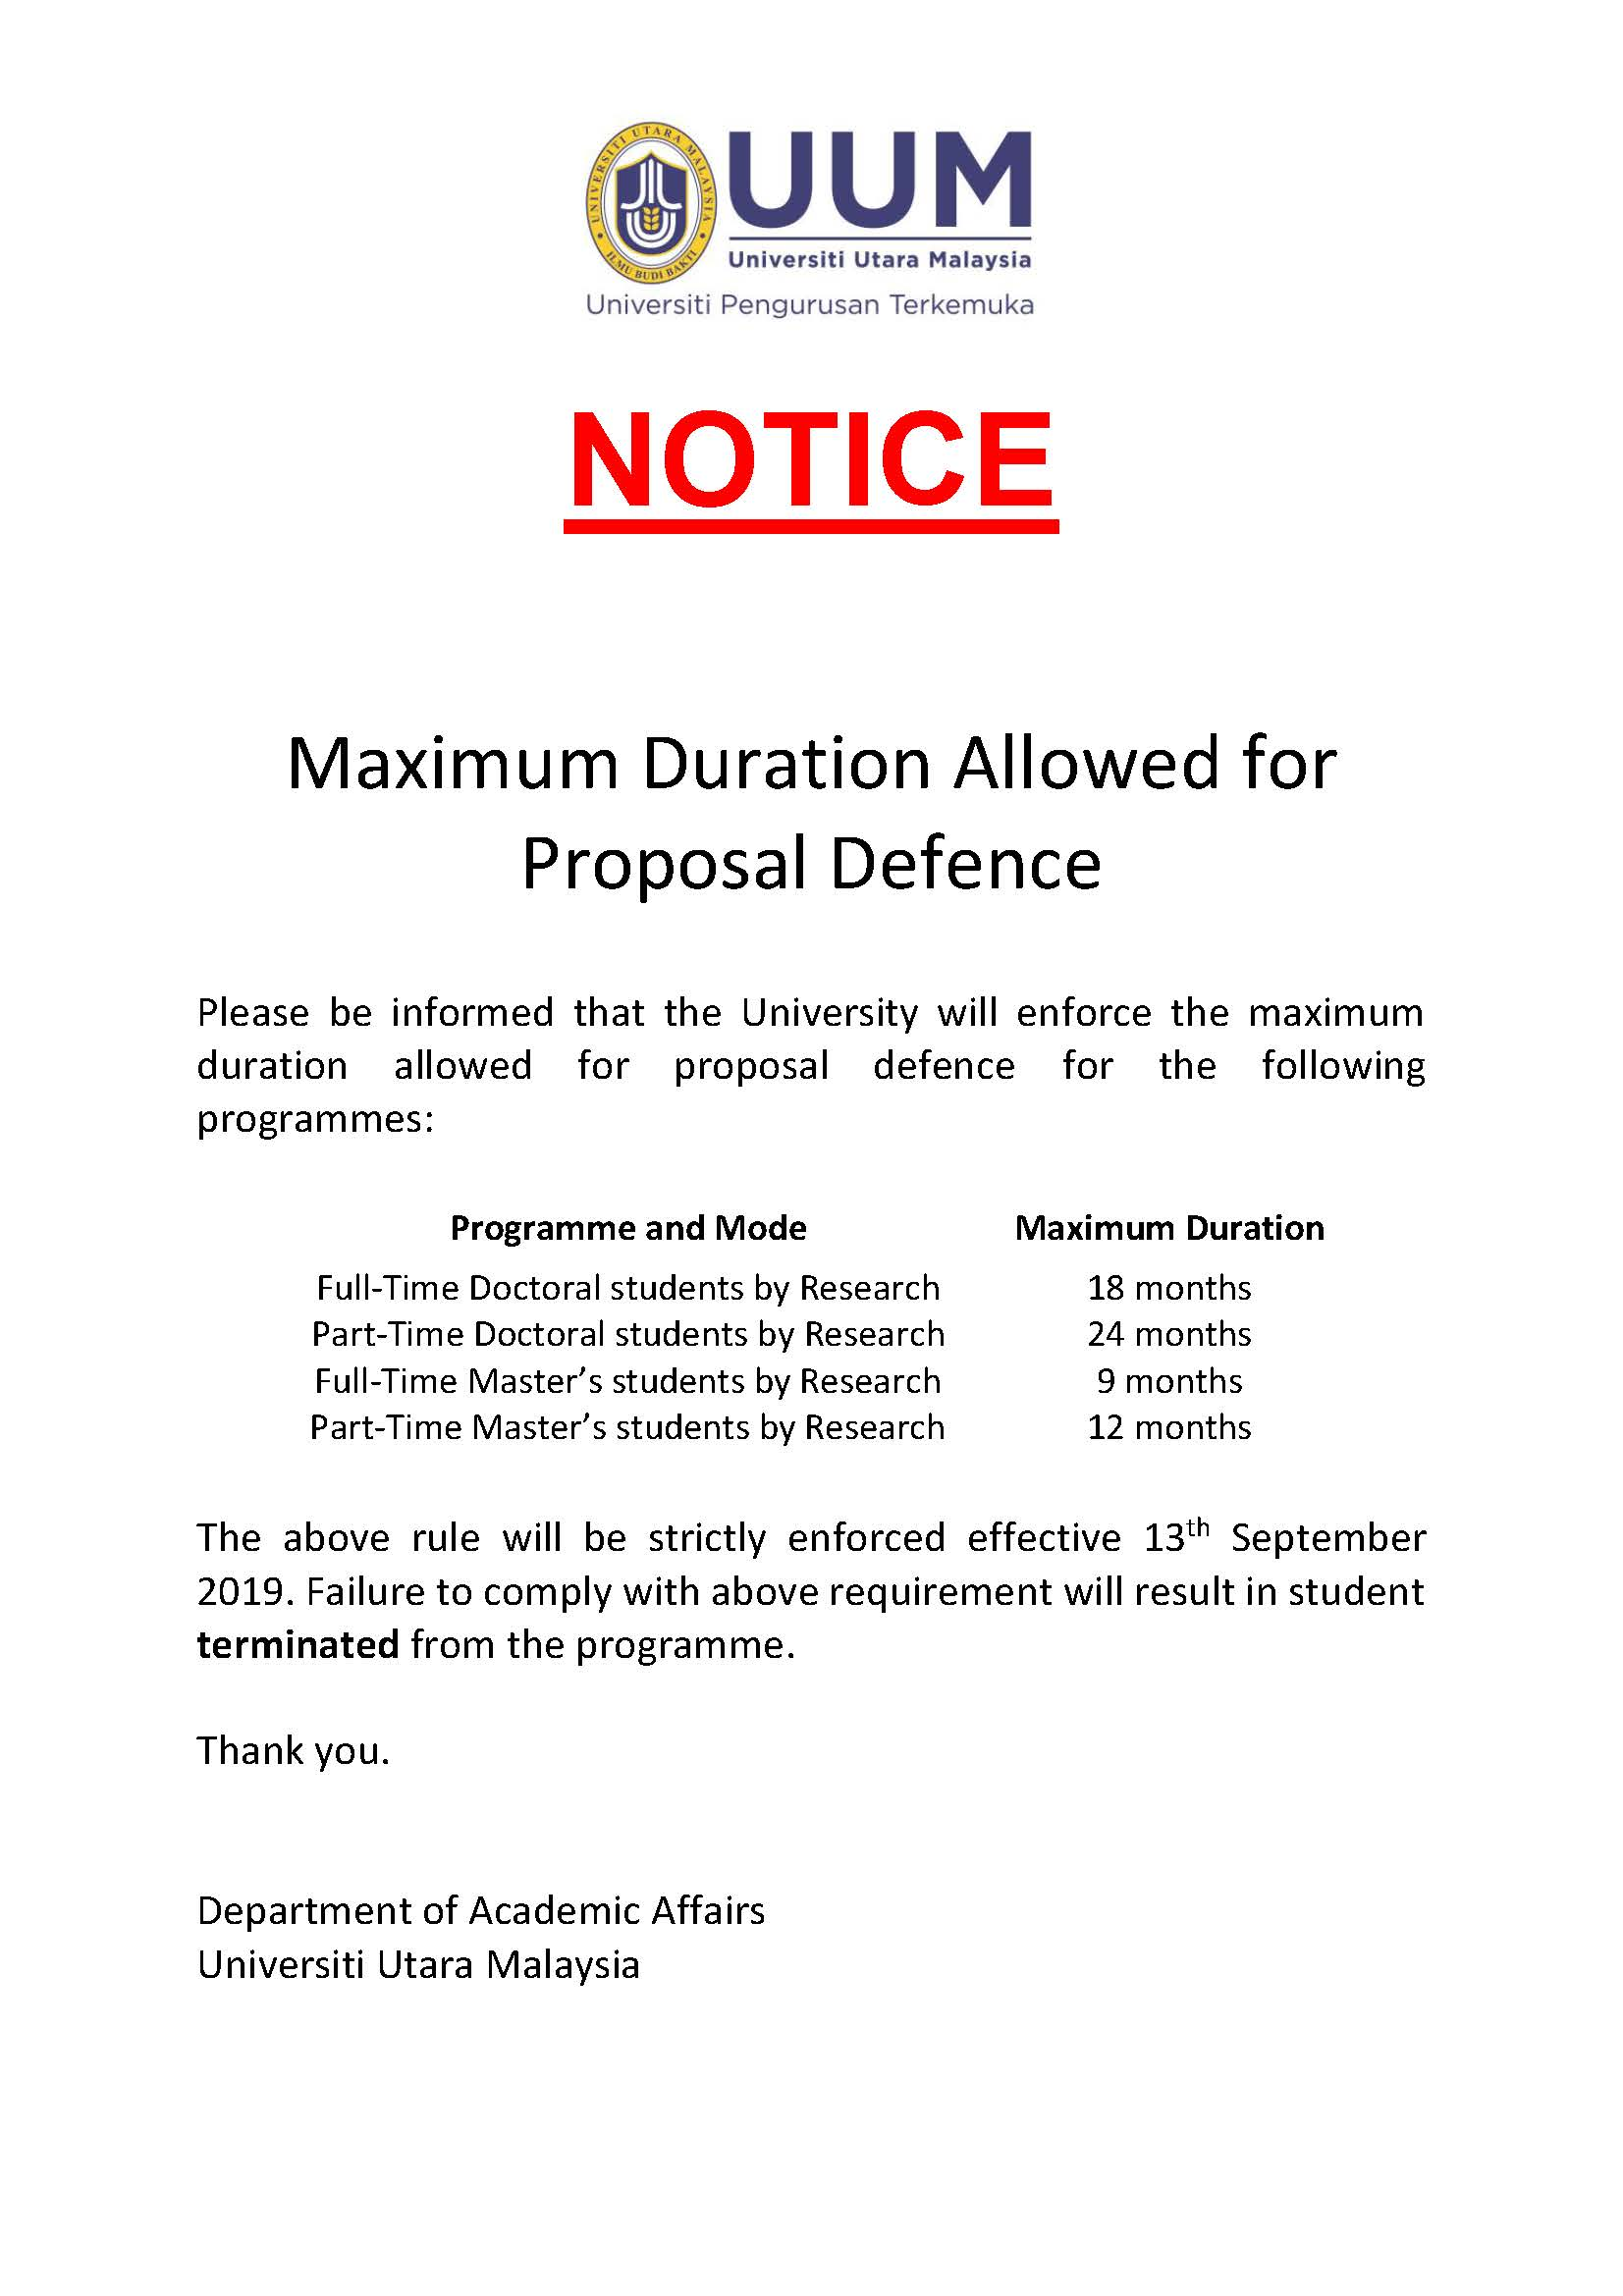 Maximum Duration Allowed for Proposal Defence